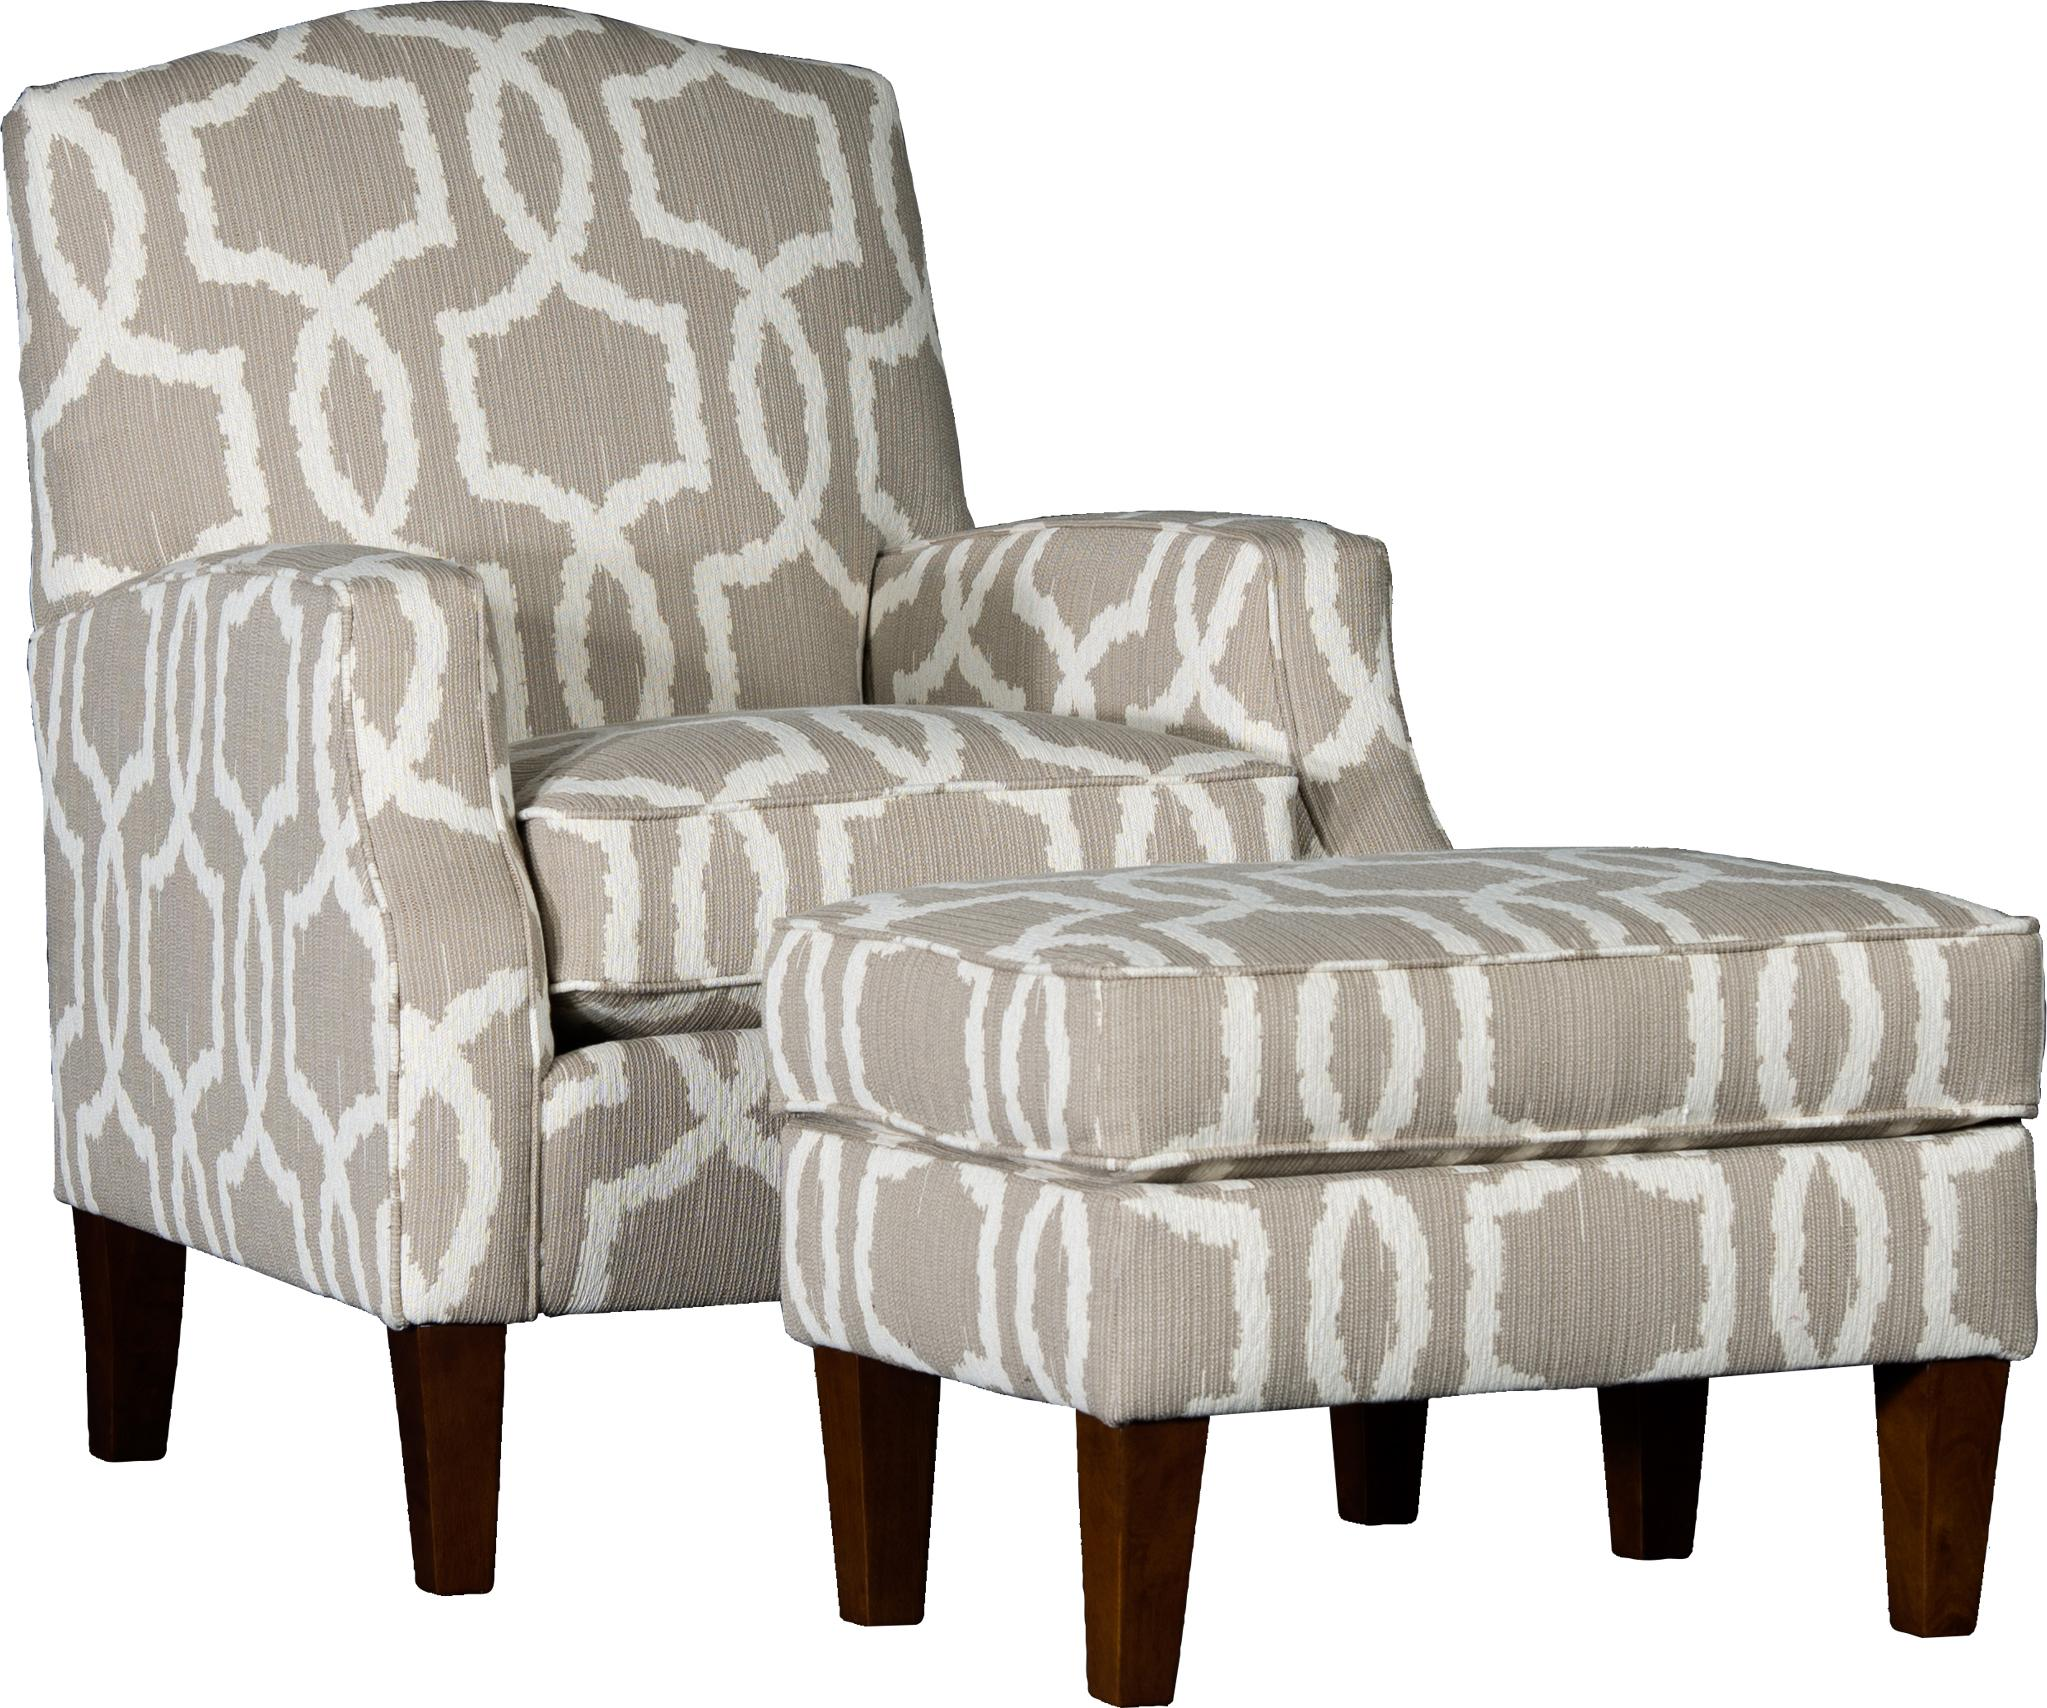 3725 Chair & Ottoman Set by Mayo at Wilcox Furniture